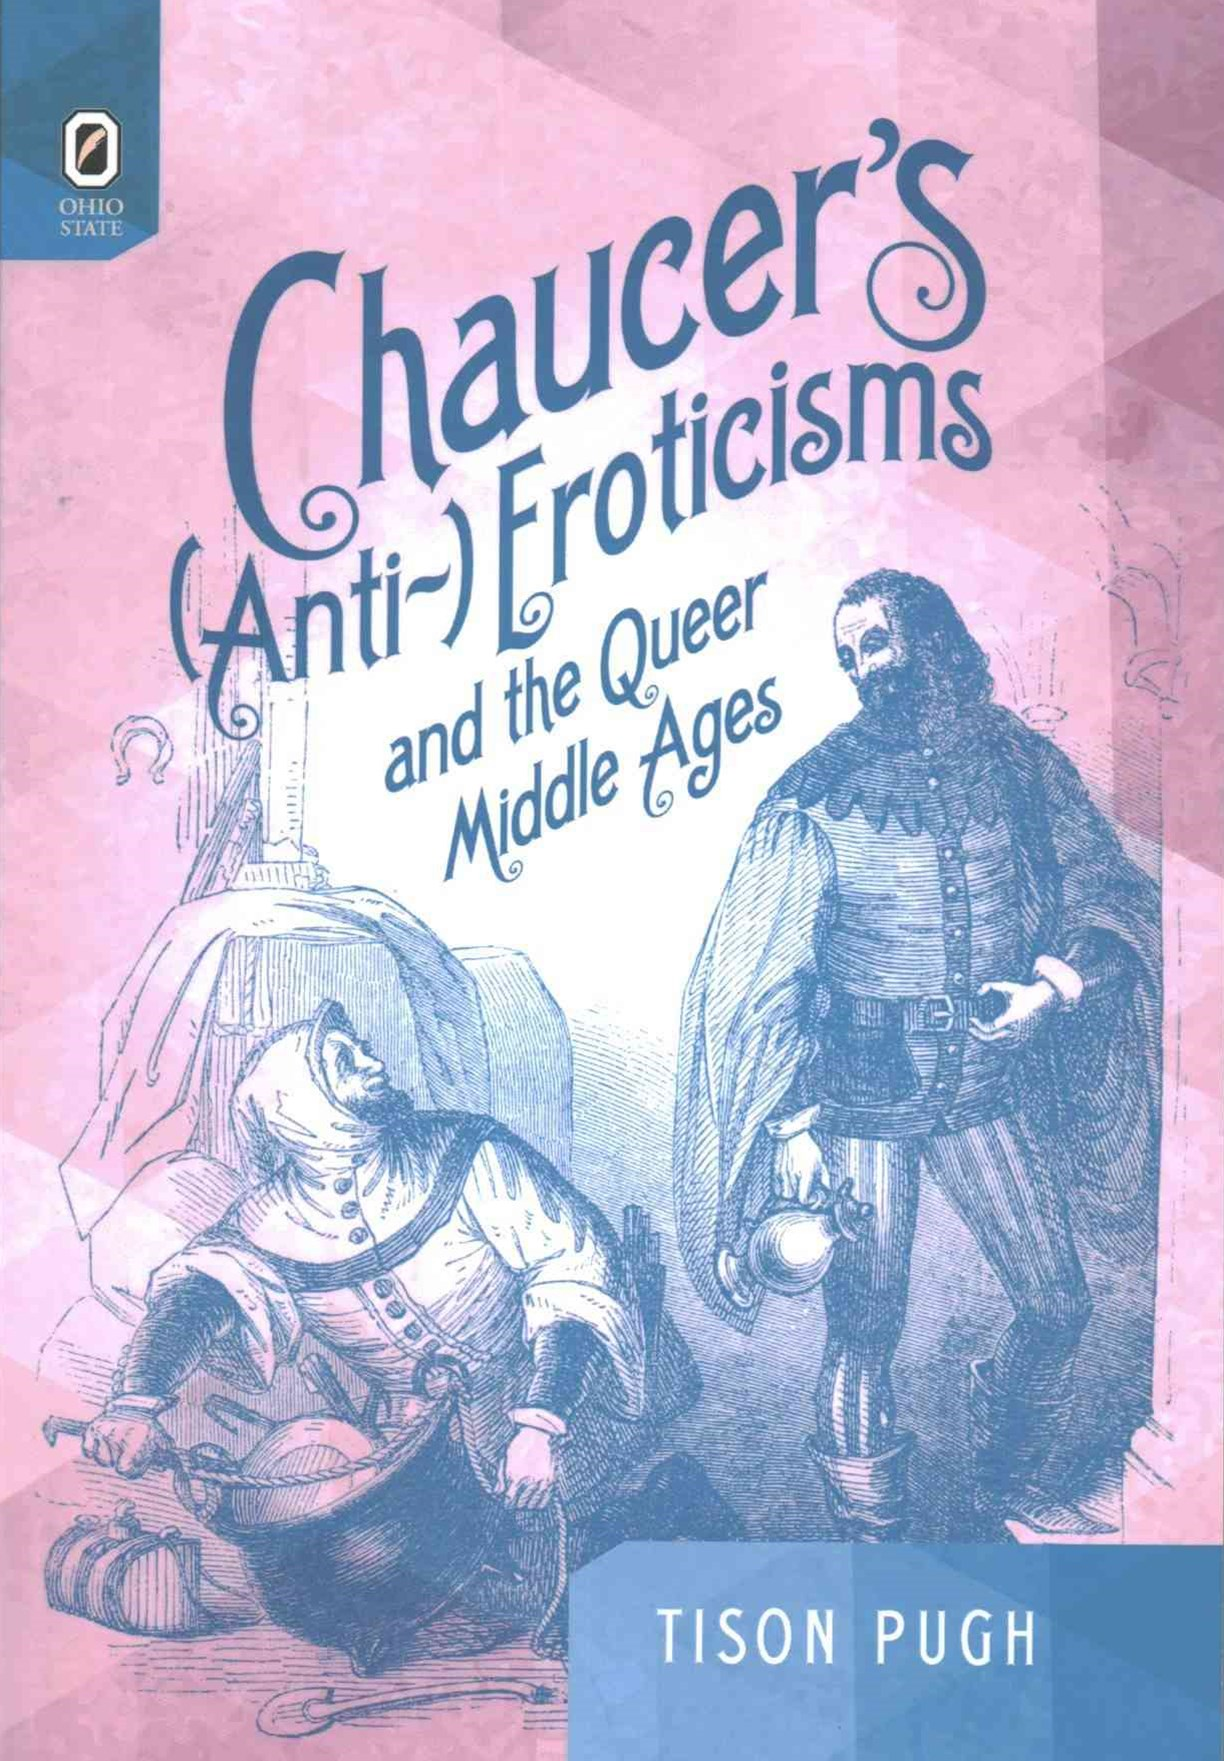 Chaucer's (Anti-)Eroticisms and the Queer Middle Ages